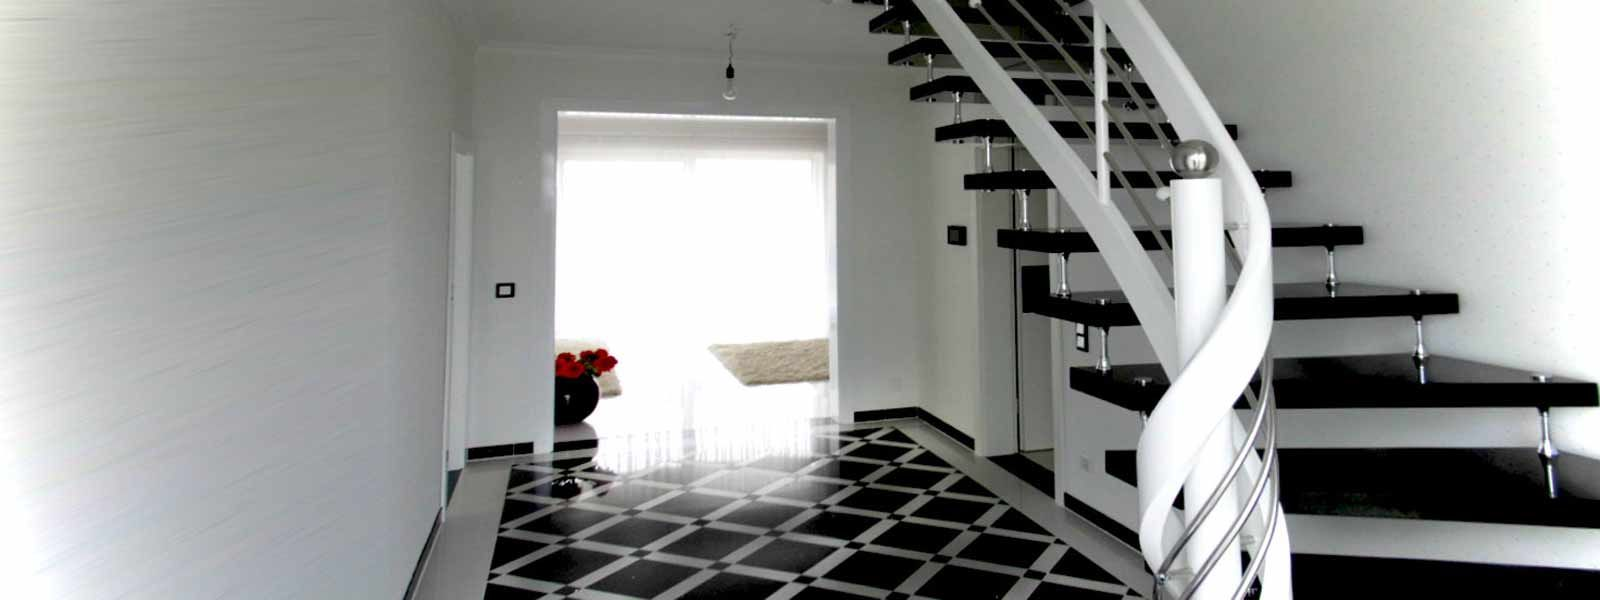 freitragende treppe in schwarz aus granit mit. Black Bedroom Furniture Sets. Home Design Ideas